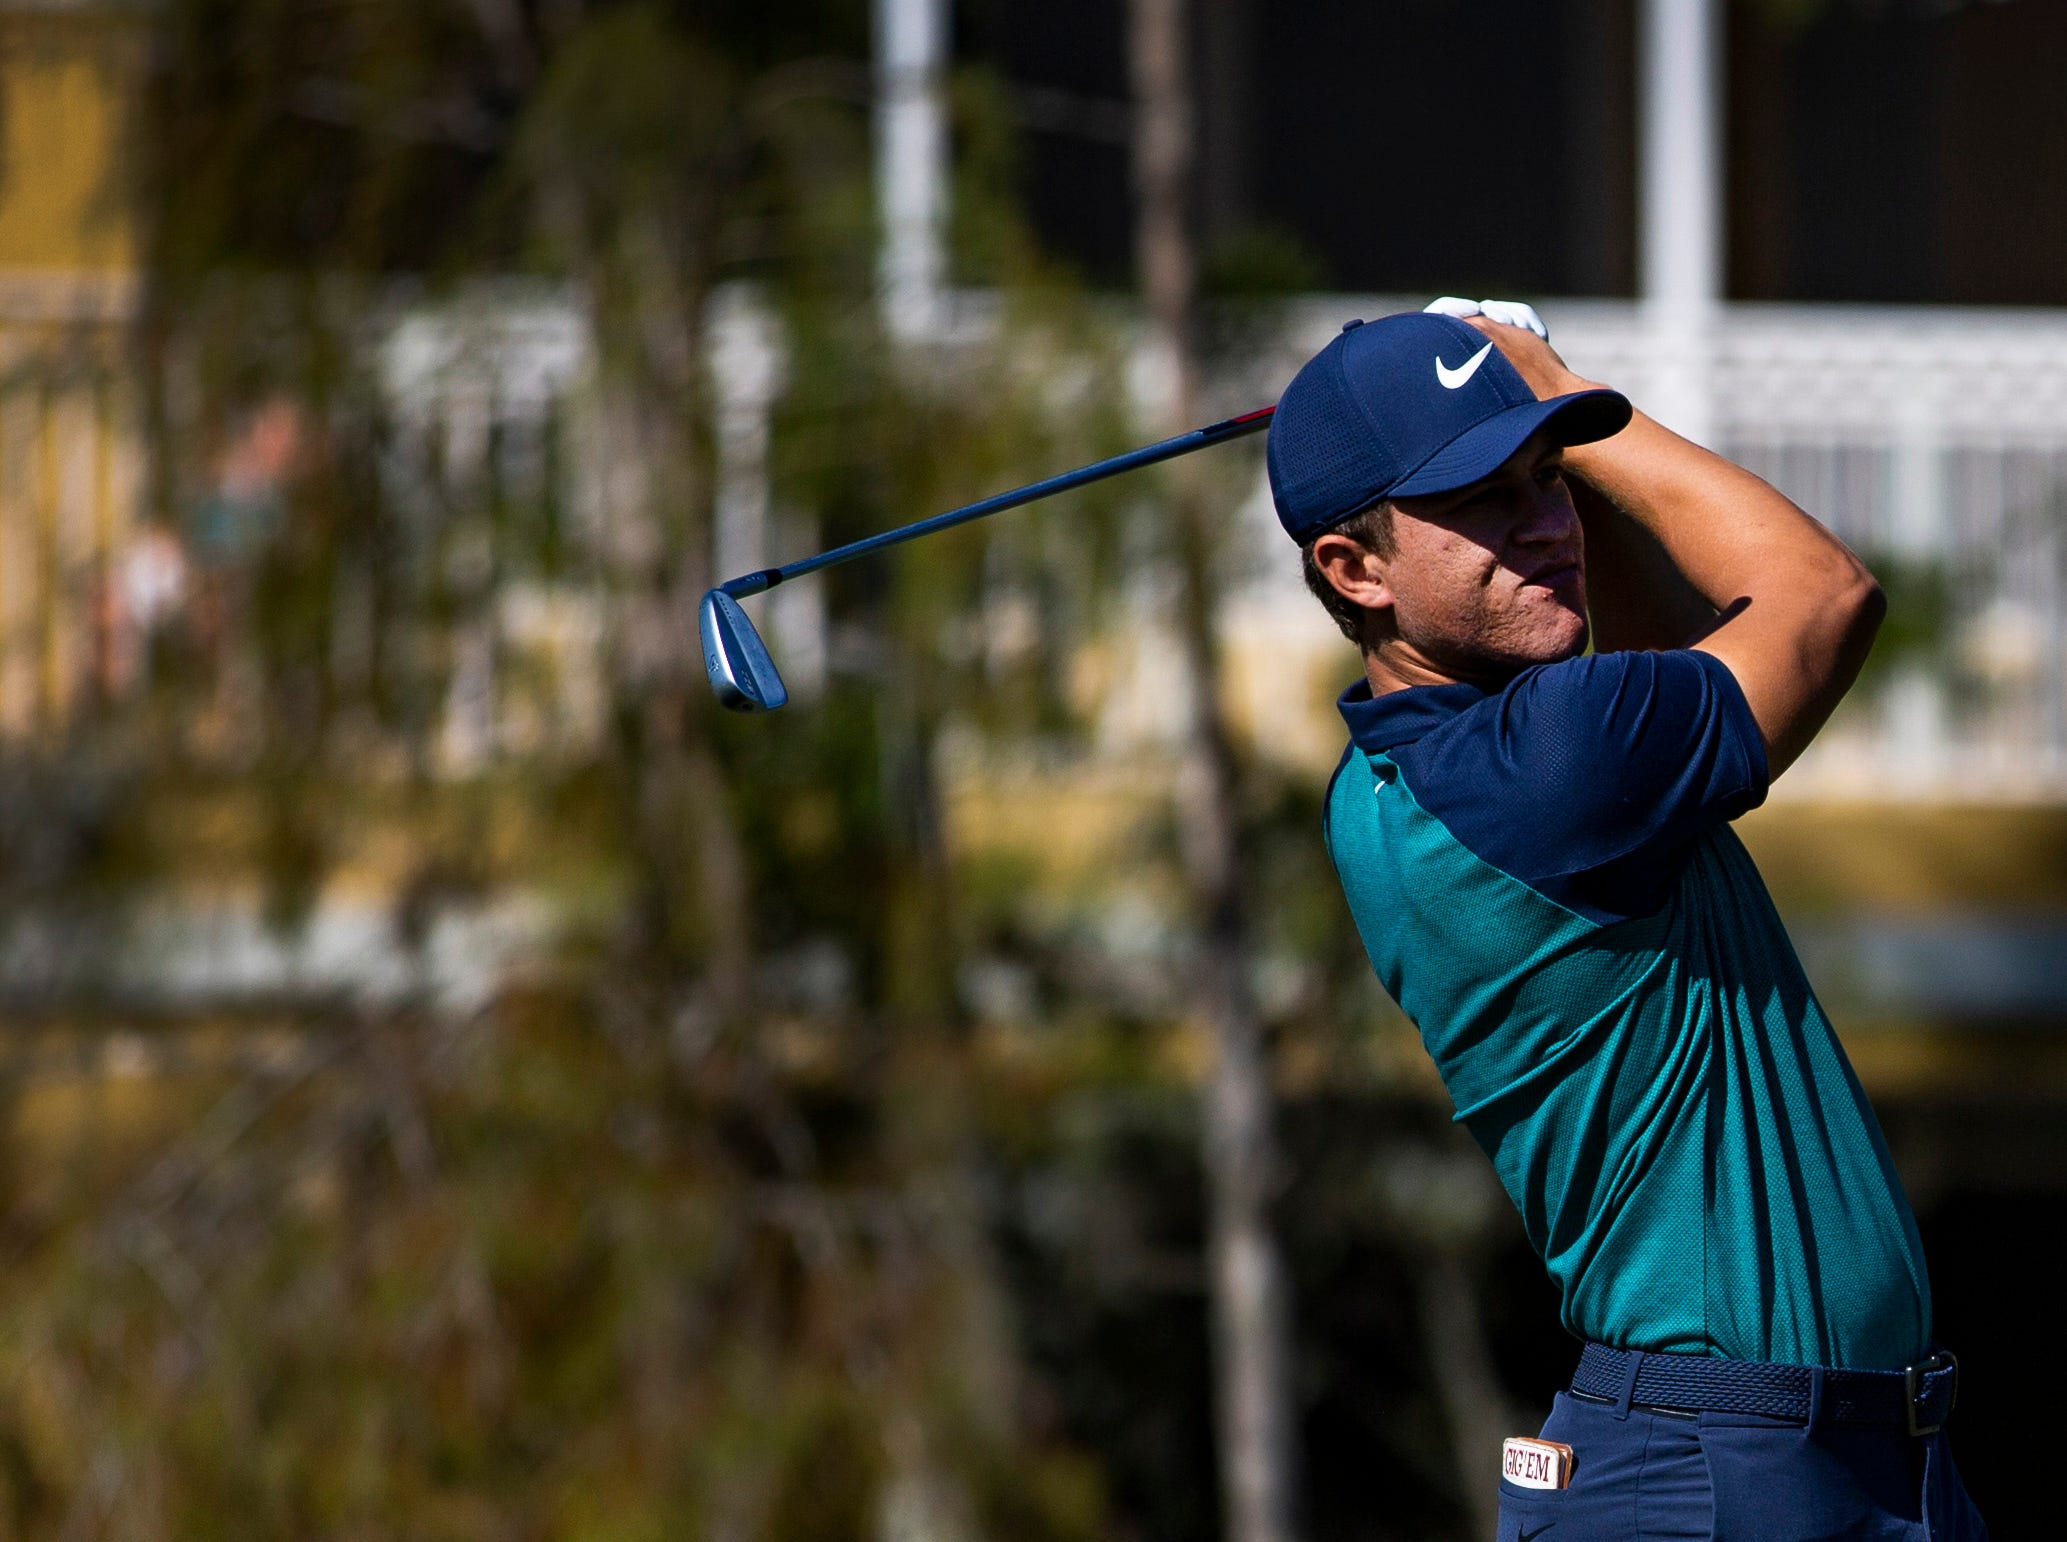 Cameron Champ of California, watches the ball after teeing off during the first Pro - Amateur round of the 30th annual QBE Shootout at Tiburón Golf Club on Wednesday, Dec. 5, 2018.